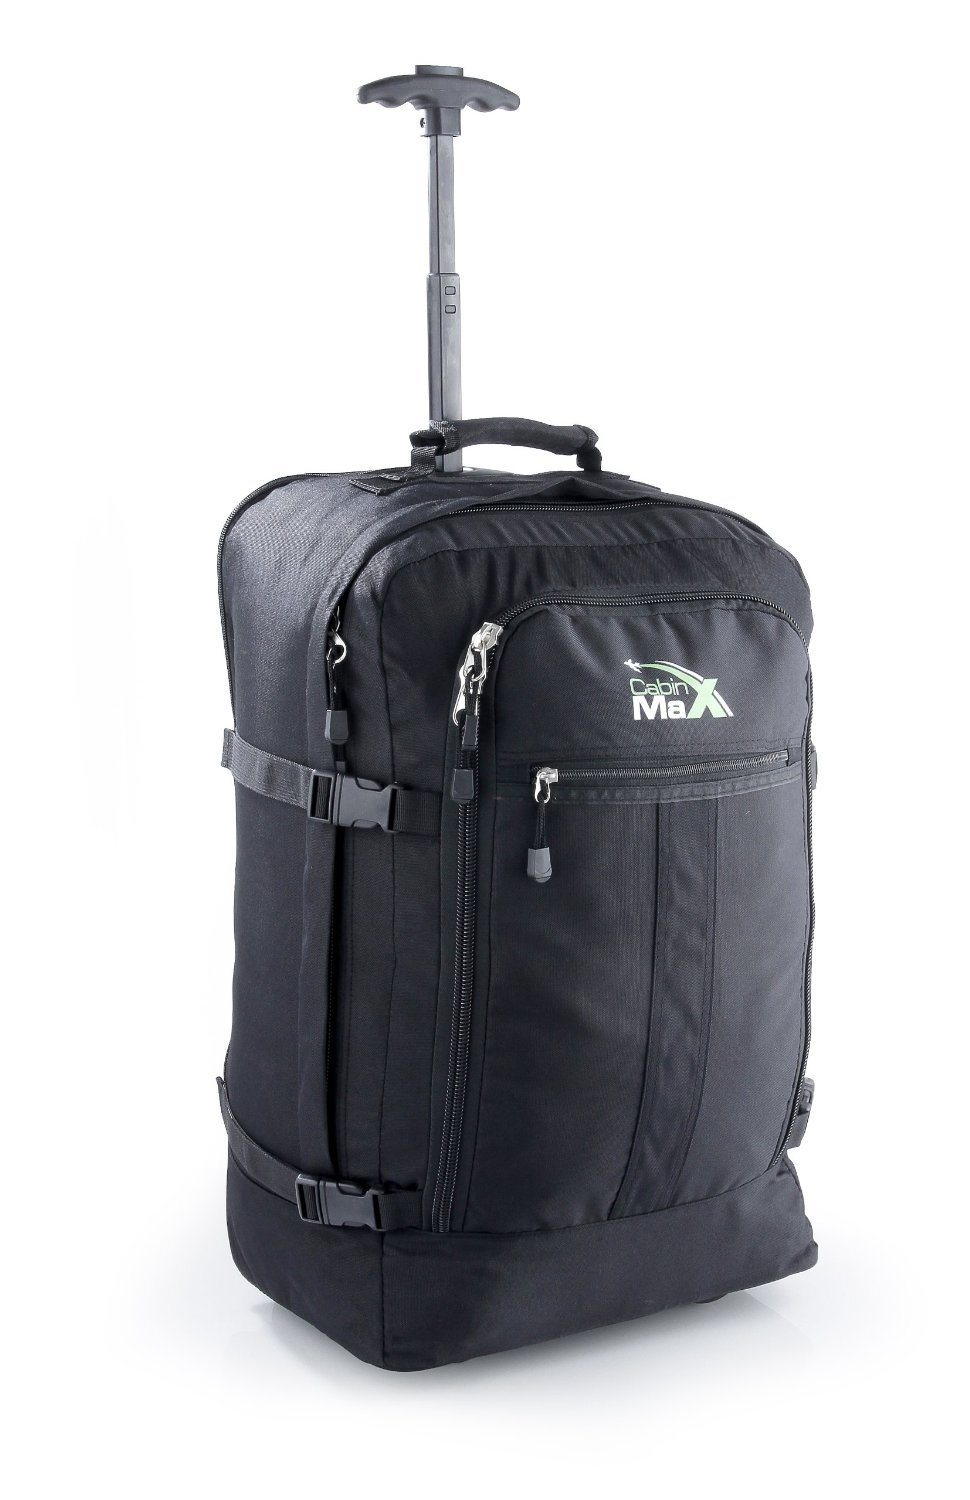 cabin max lyon flight approved bag wheeled carry on luggage backpack 22x16x8 ebay. Black Bedroom Furniture Sets. Home Design Ideas